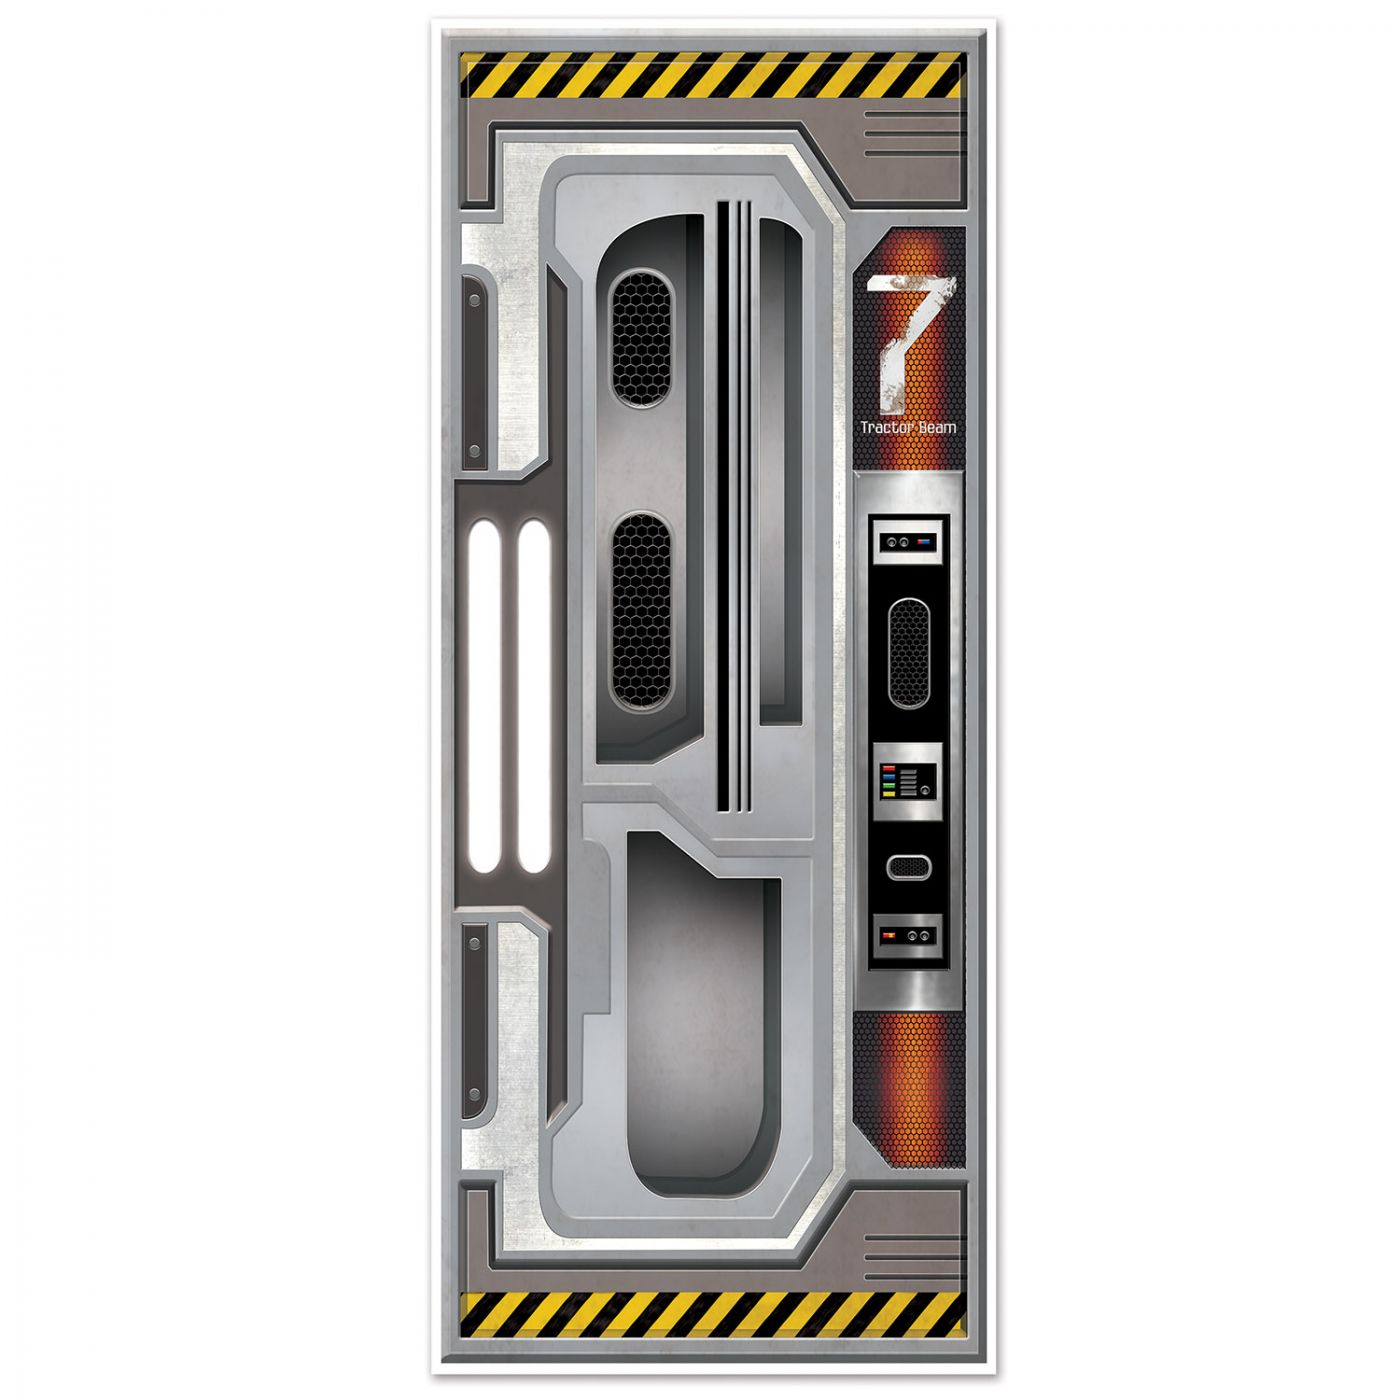 Spaceship Door Cover image